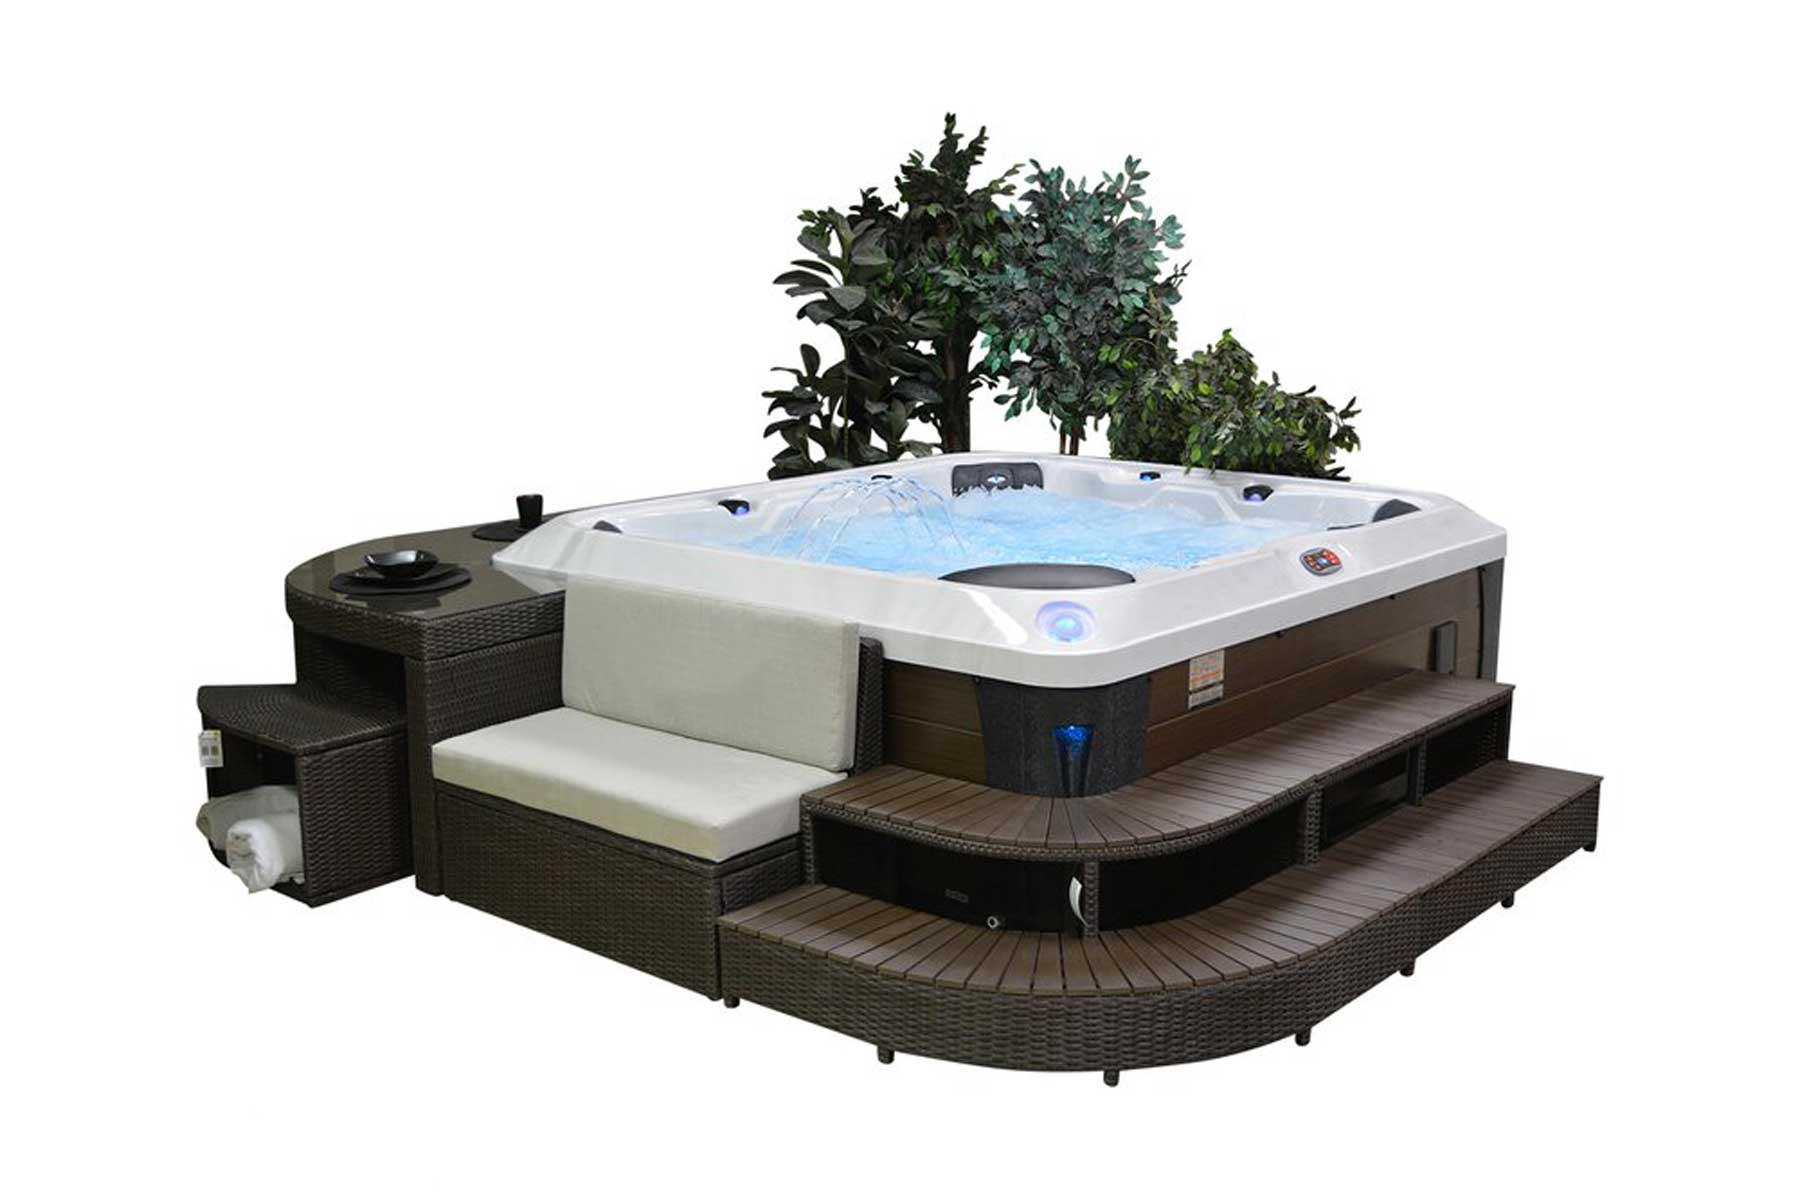 Alberta Se 6-Person 57 Jet Hot Tub